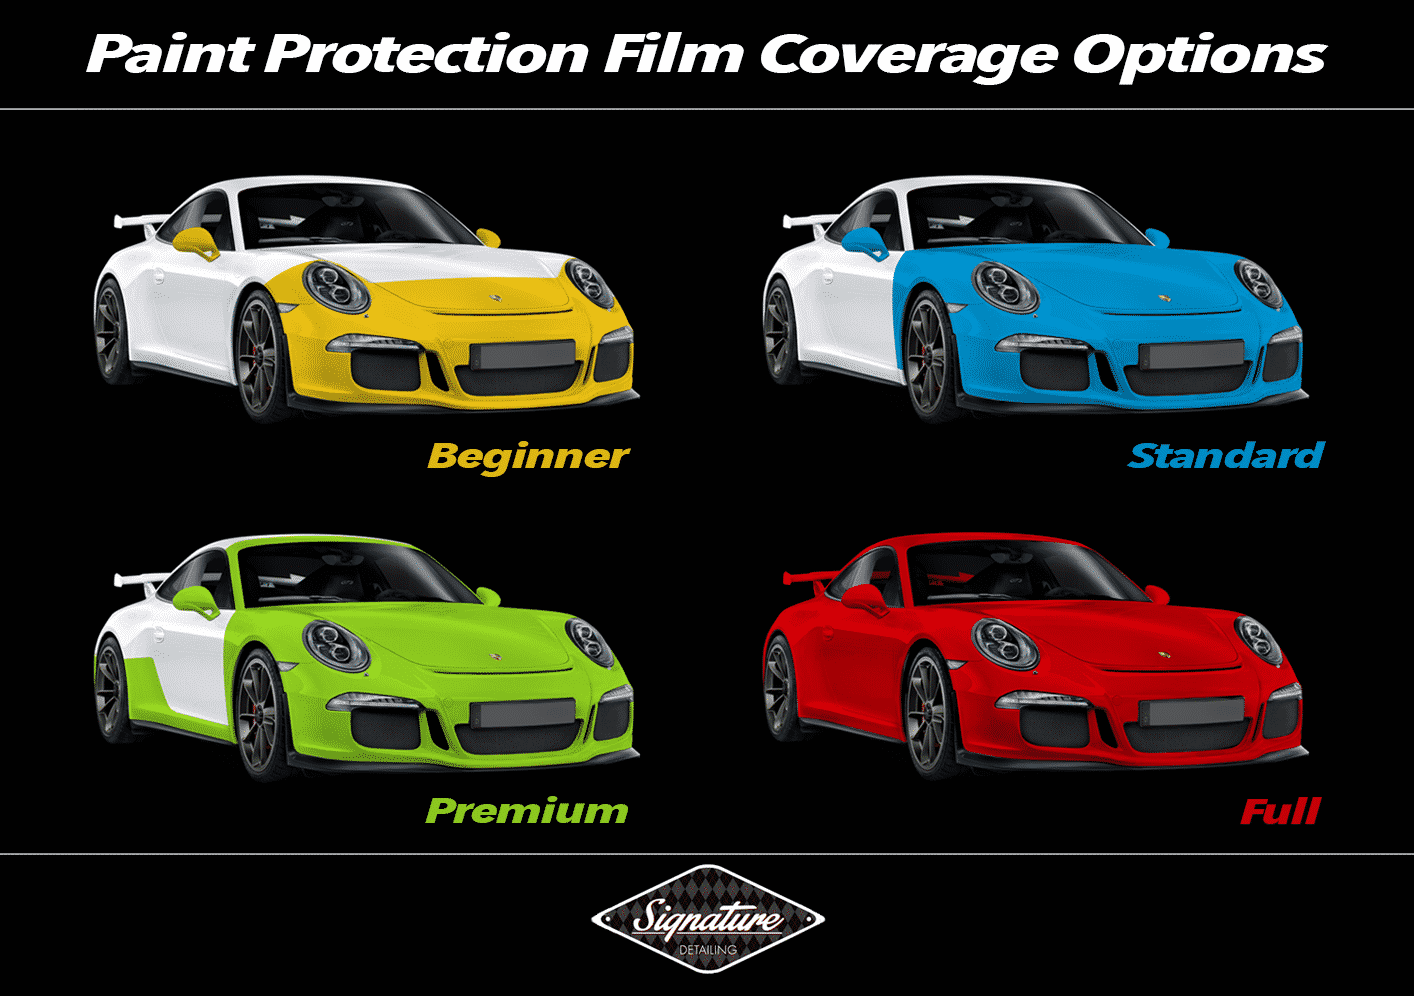 Signature Detailing New Jersey provides the best craftsmanship & paint protection film coverage option in NJ & NYC